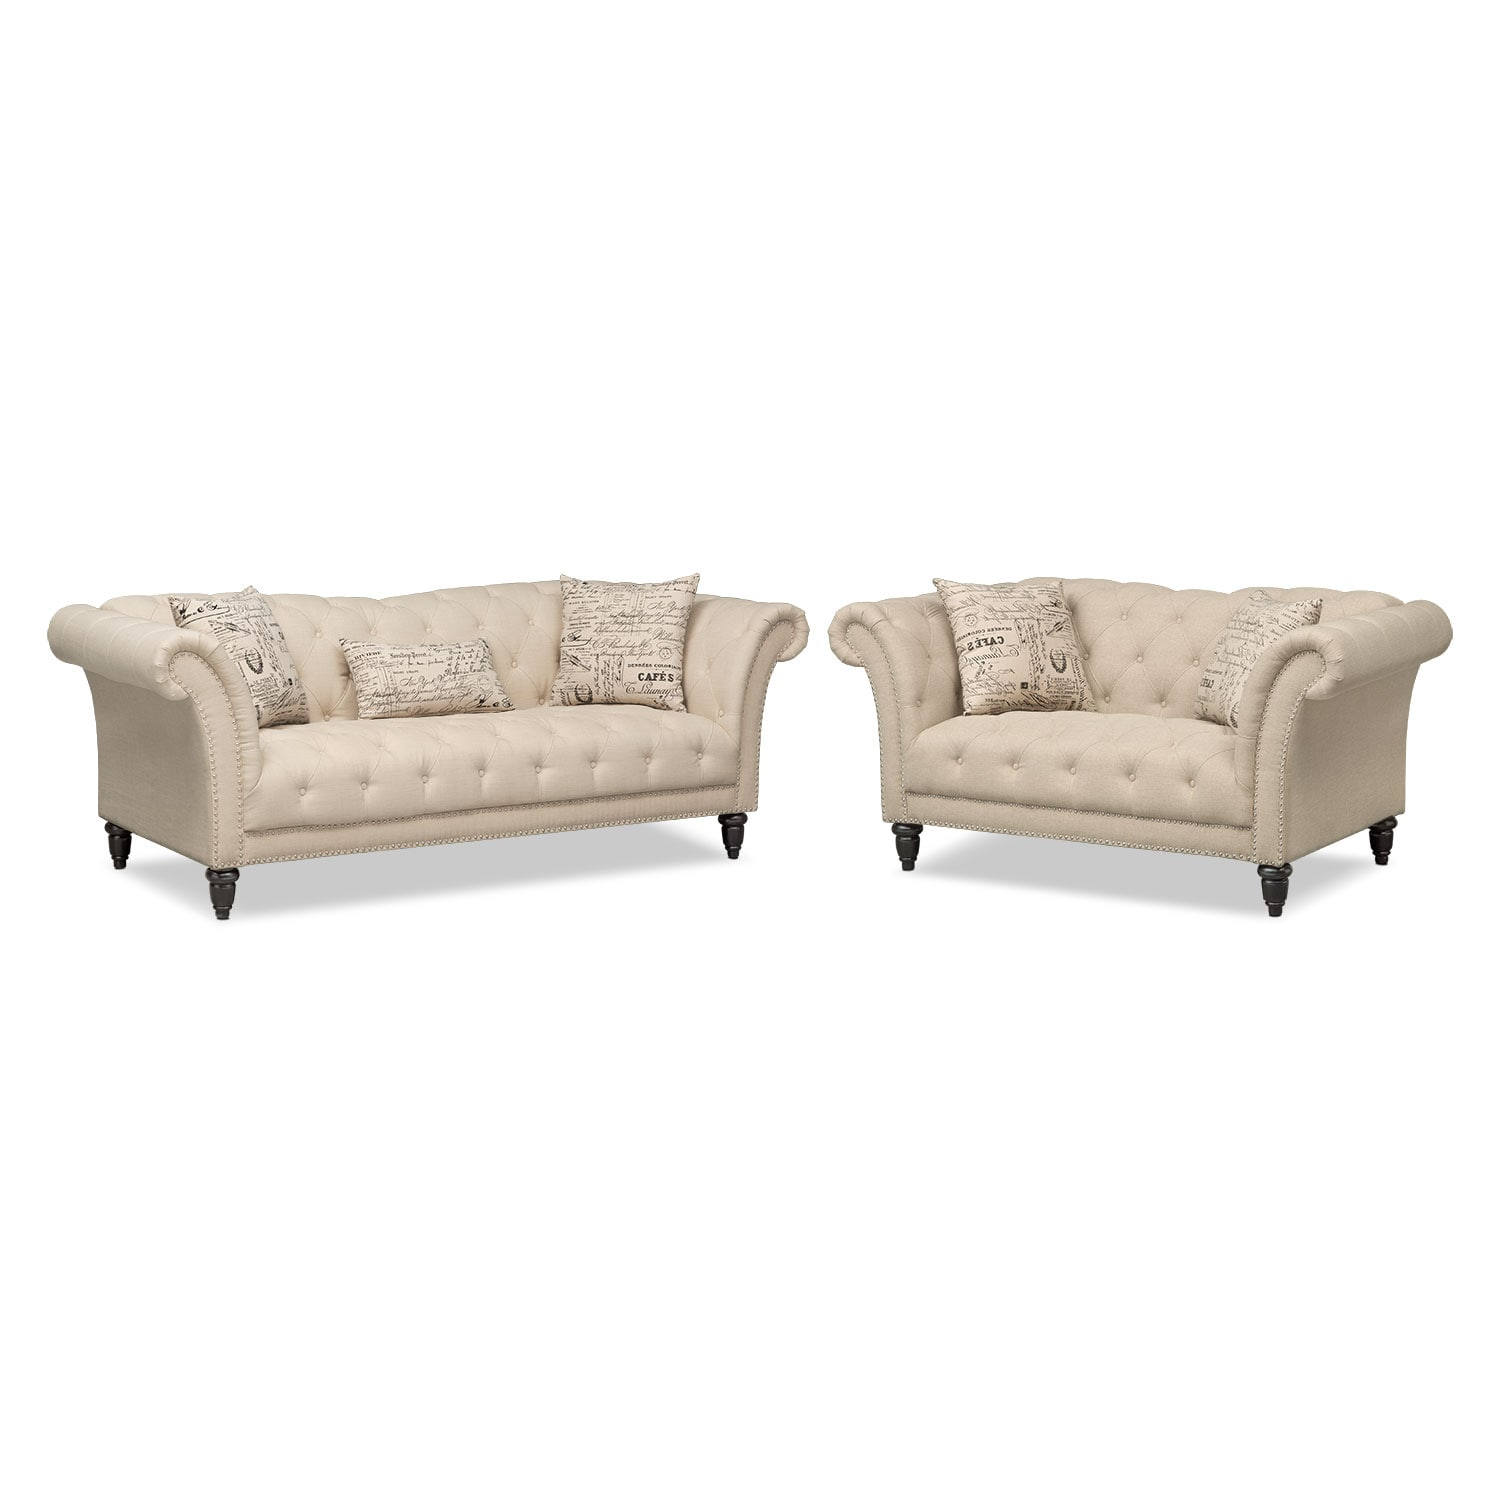 Merveilleux Living Room Furniture   Marisol Sofa And Loveseat   Beige